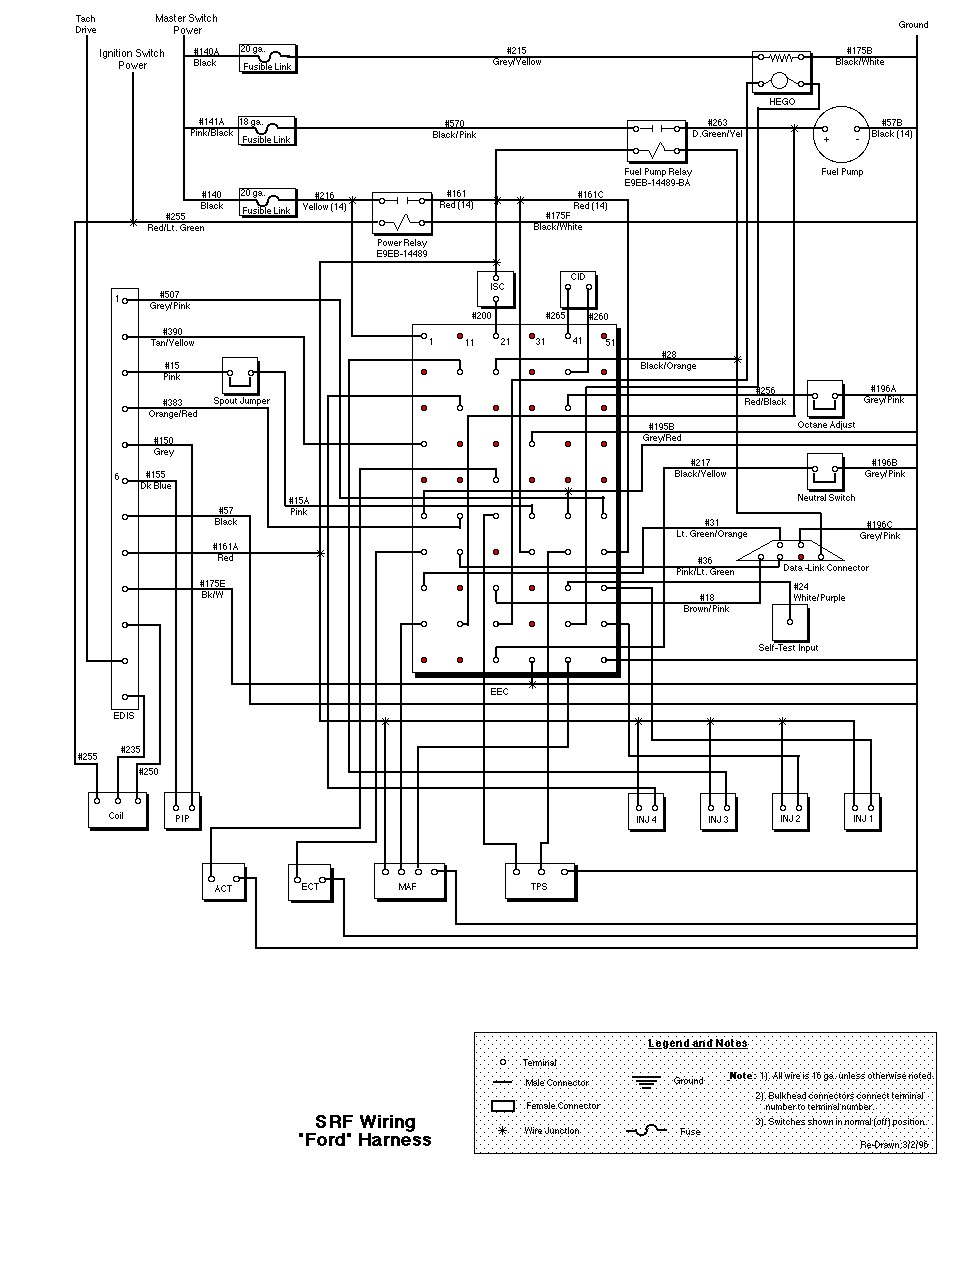 ford l9000 wiring schematic   27 wiring diagram images